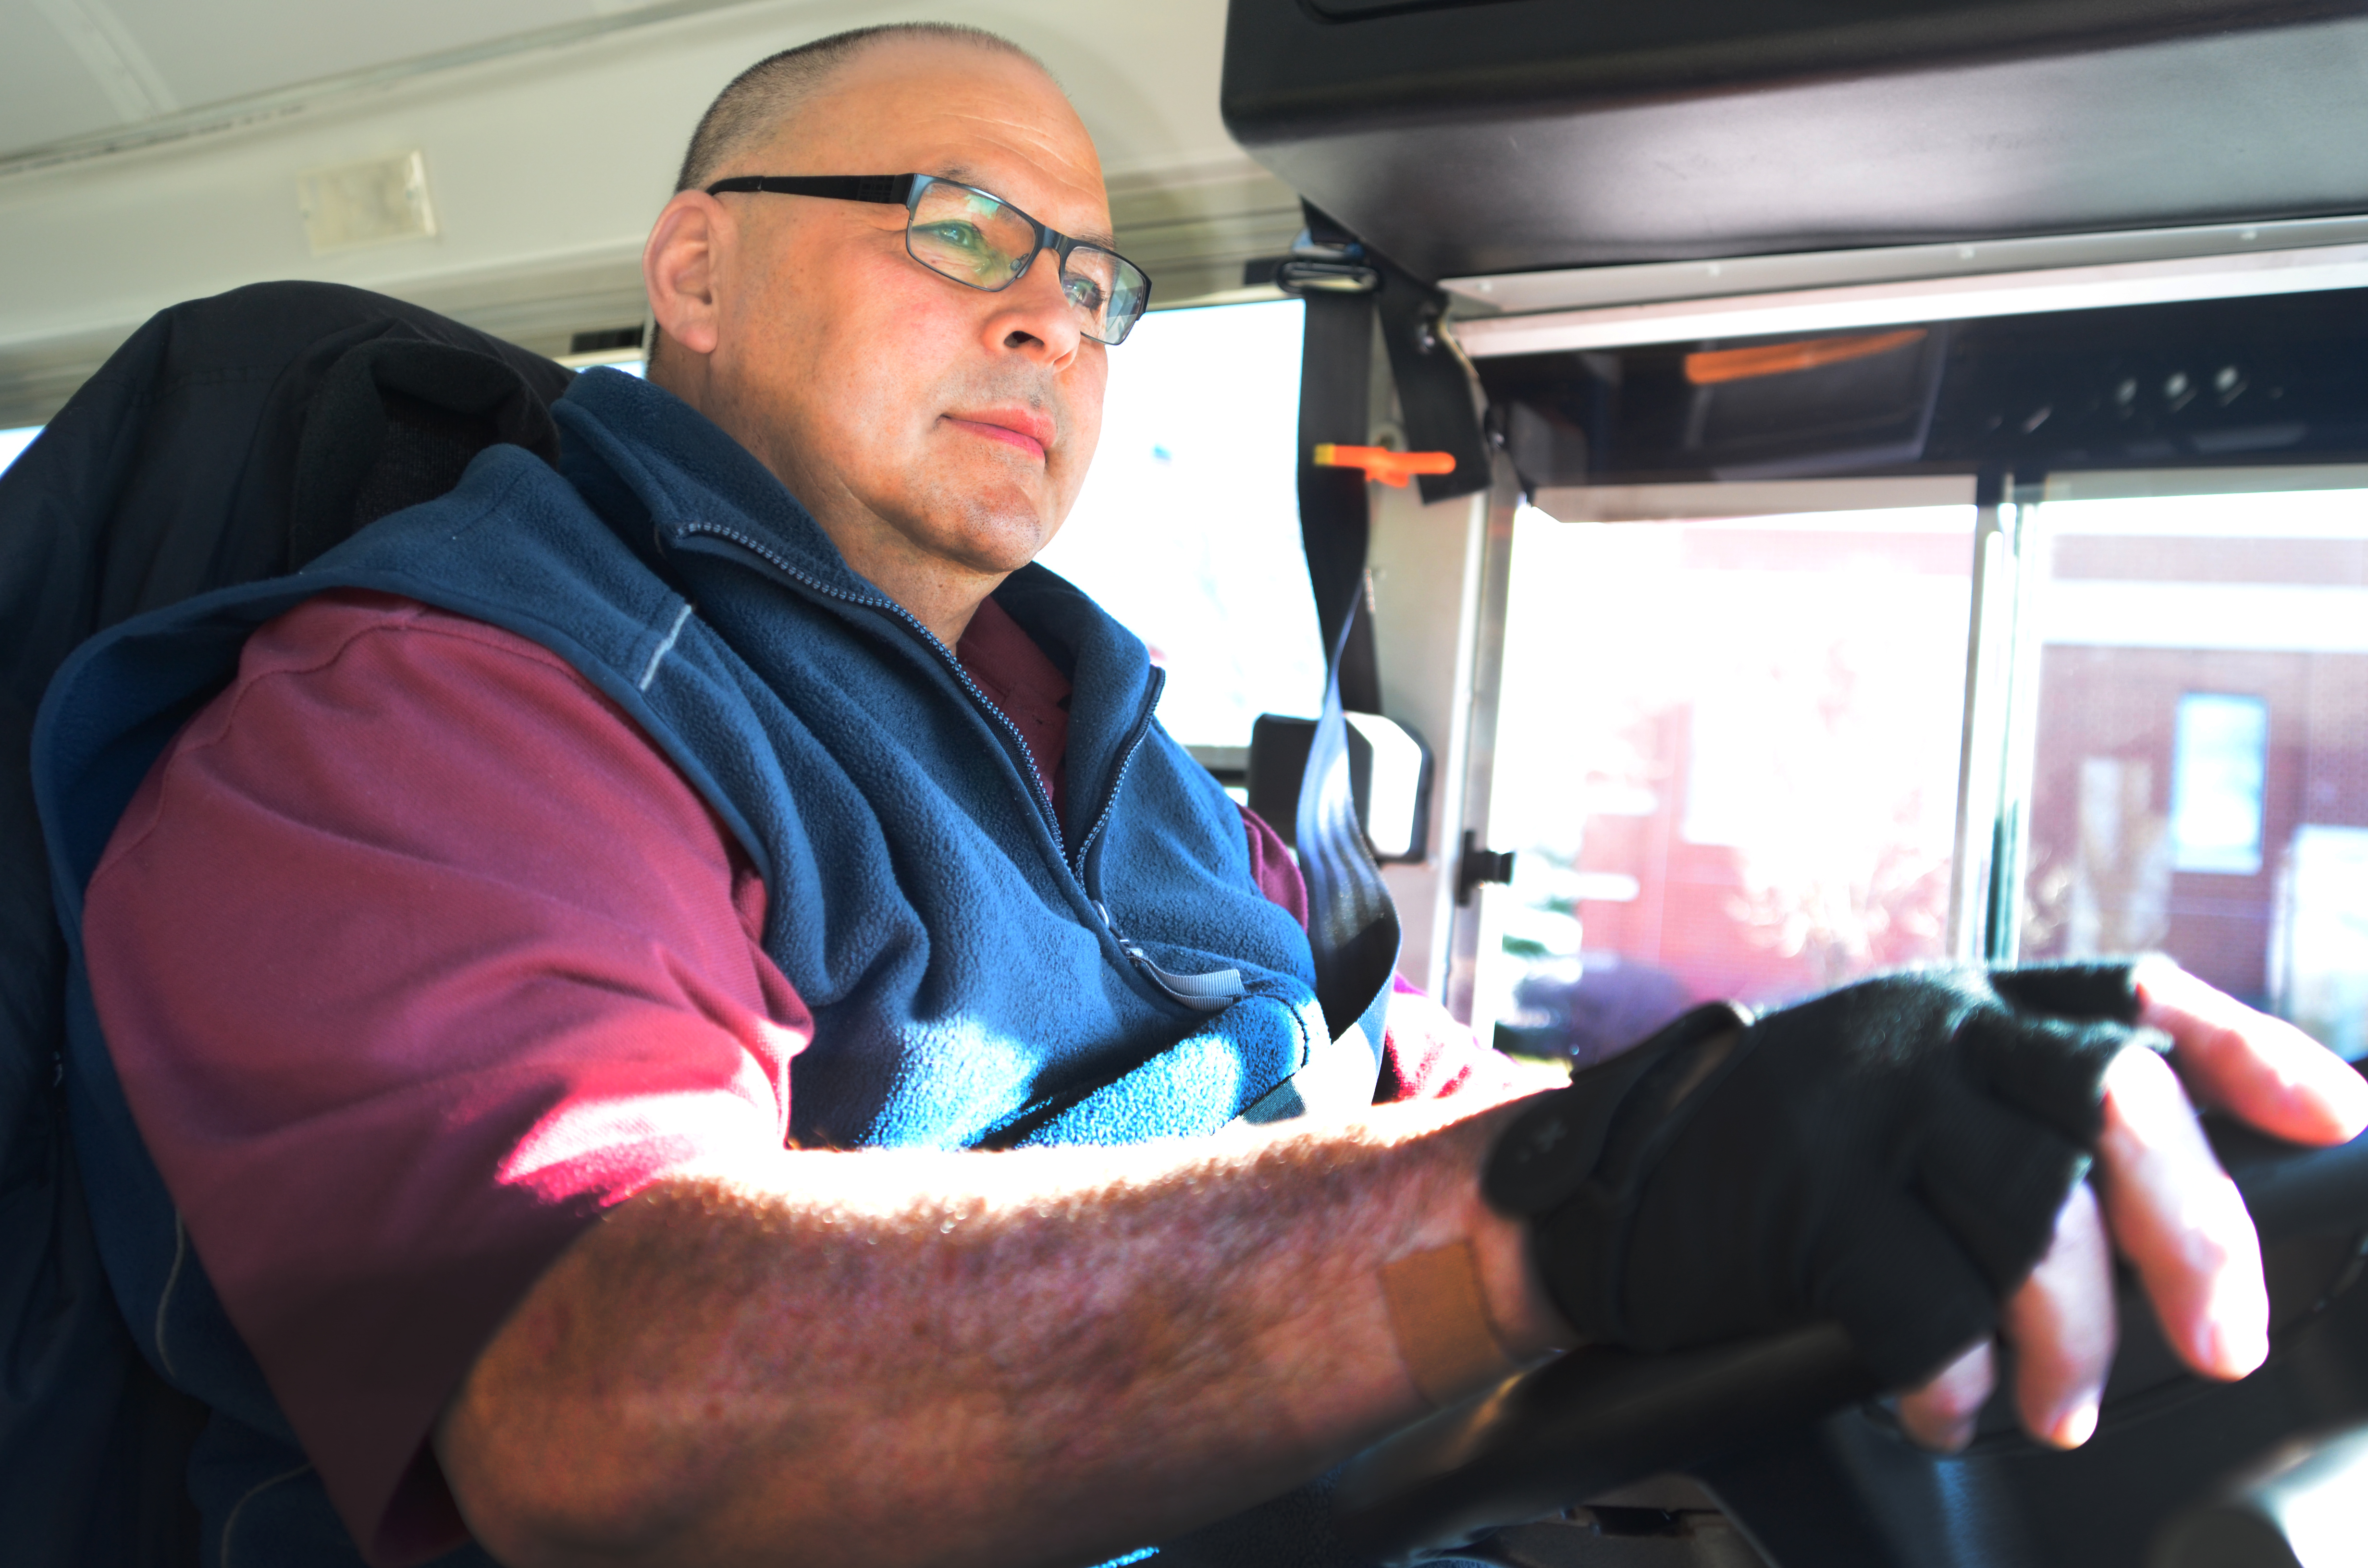 Driven to serve: DINFOS bus drivers go the extra mile